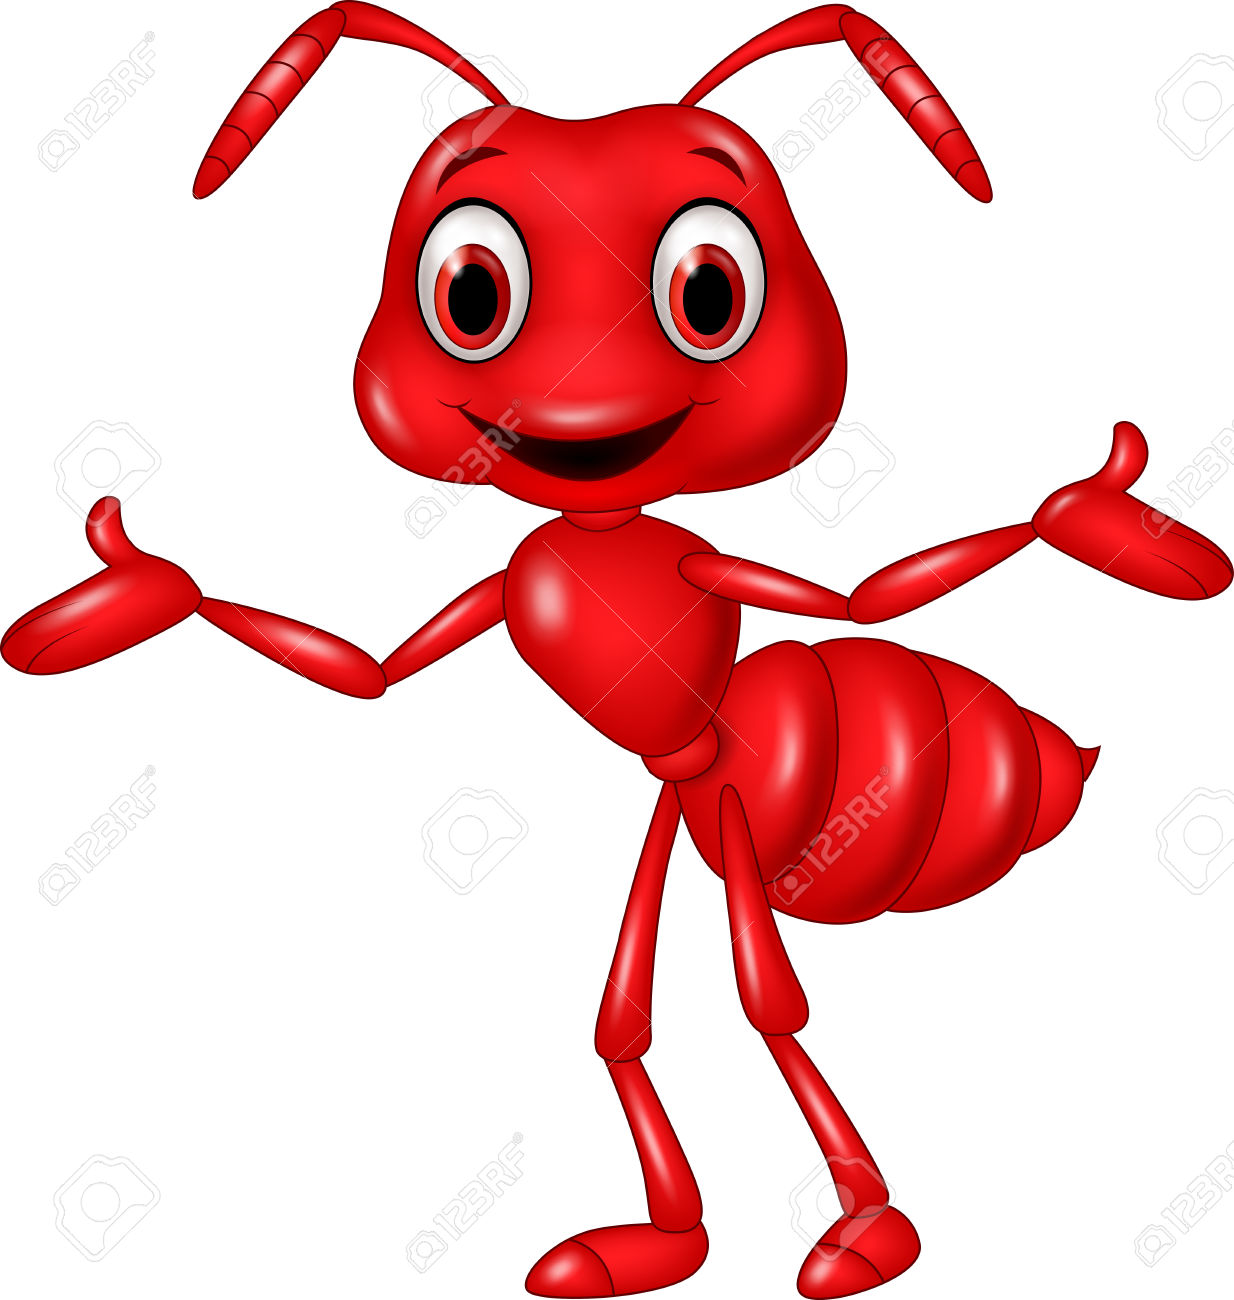 hight resolution of 1234x1300 red ant clipart explore pictures